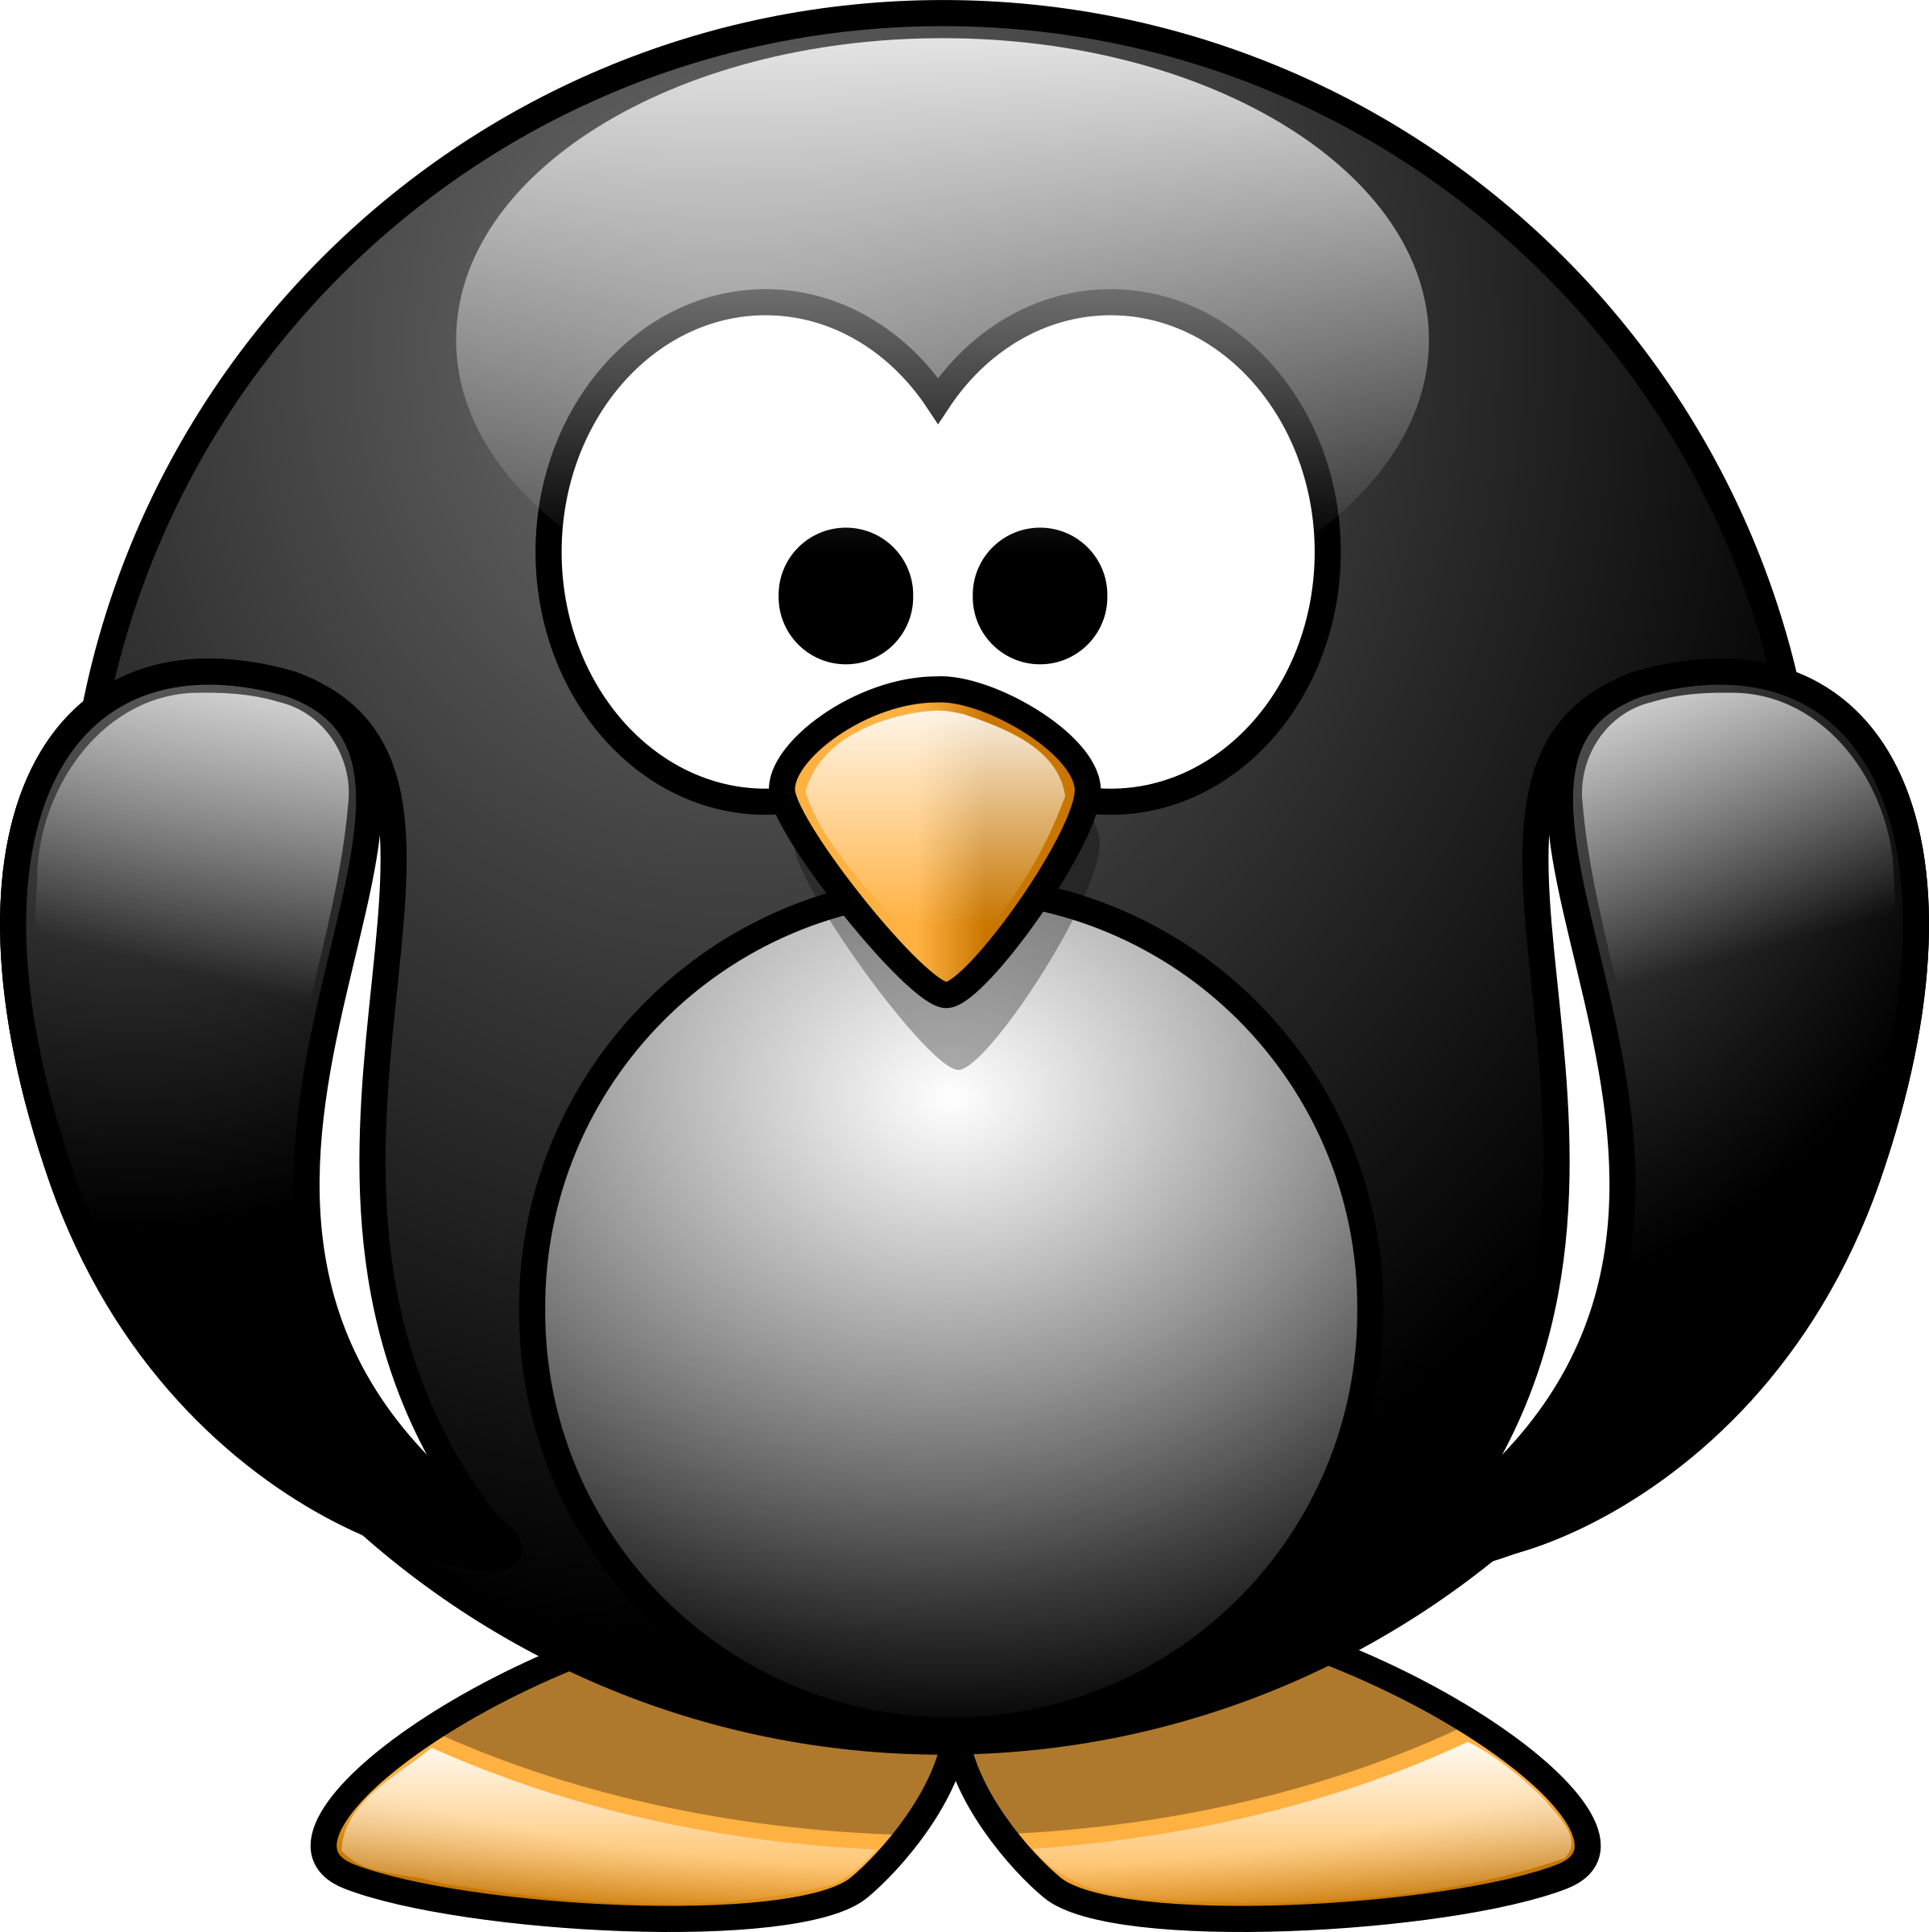 Cartoon penguin 1 by lemmling